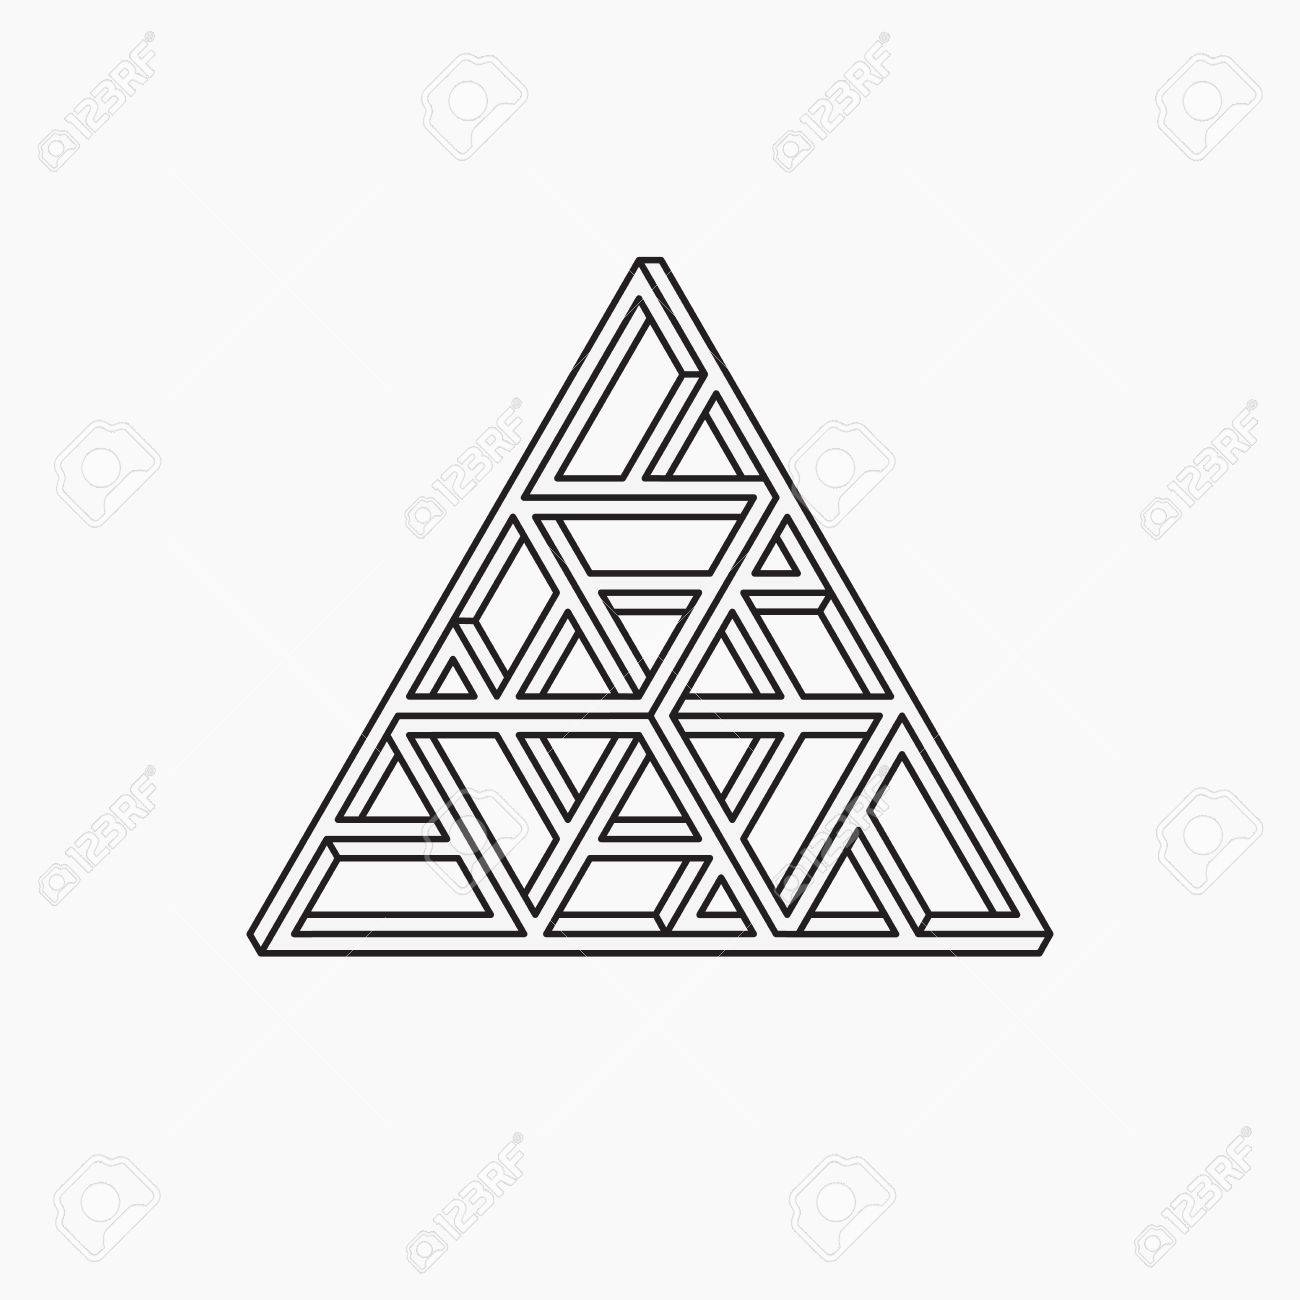 1300x1300 Impossible Shape. Triangle. Line Design. Vector Illustration